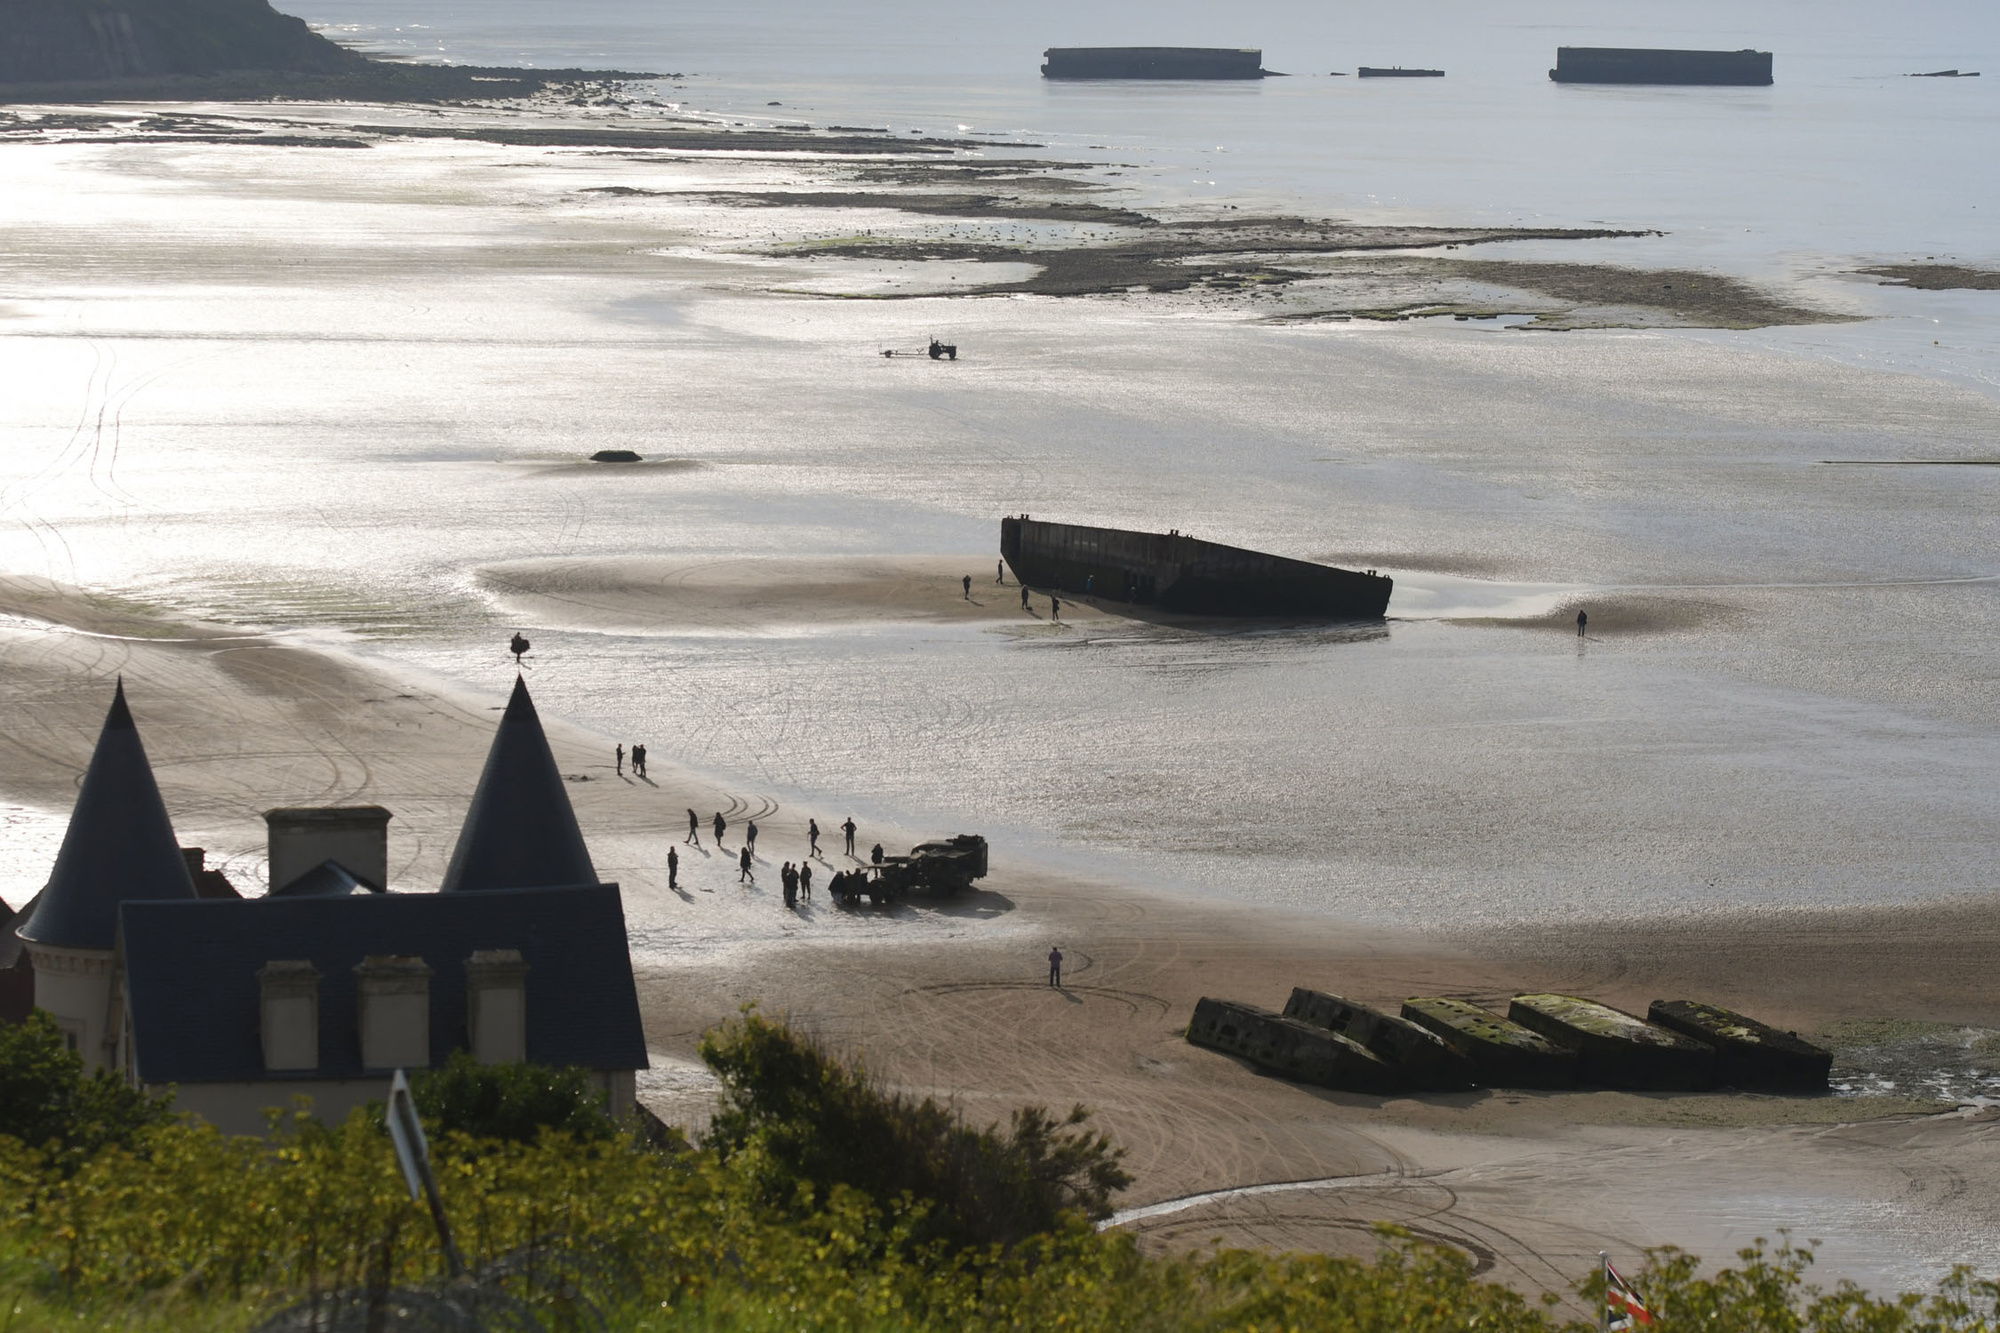 Mulberry harbour dans la baie d'Arromanches, le 4 juin 2019, Getty Images